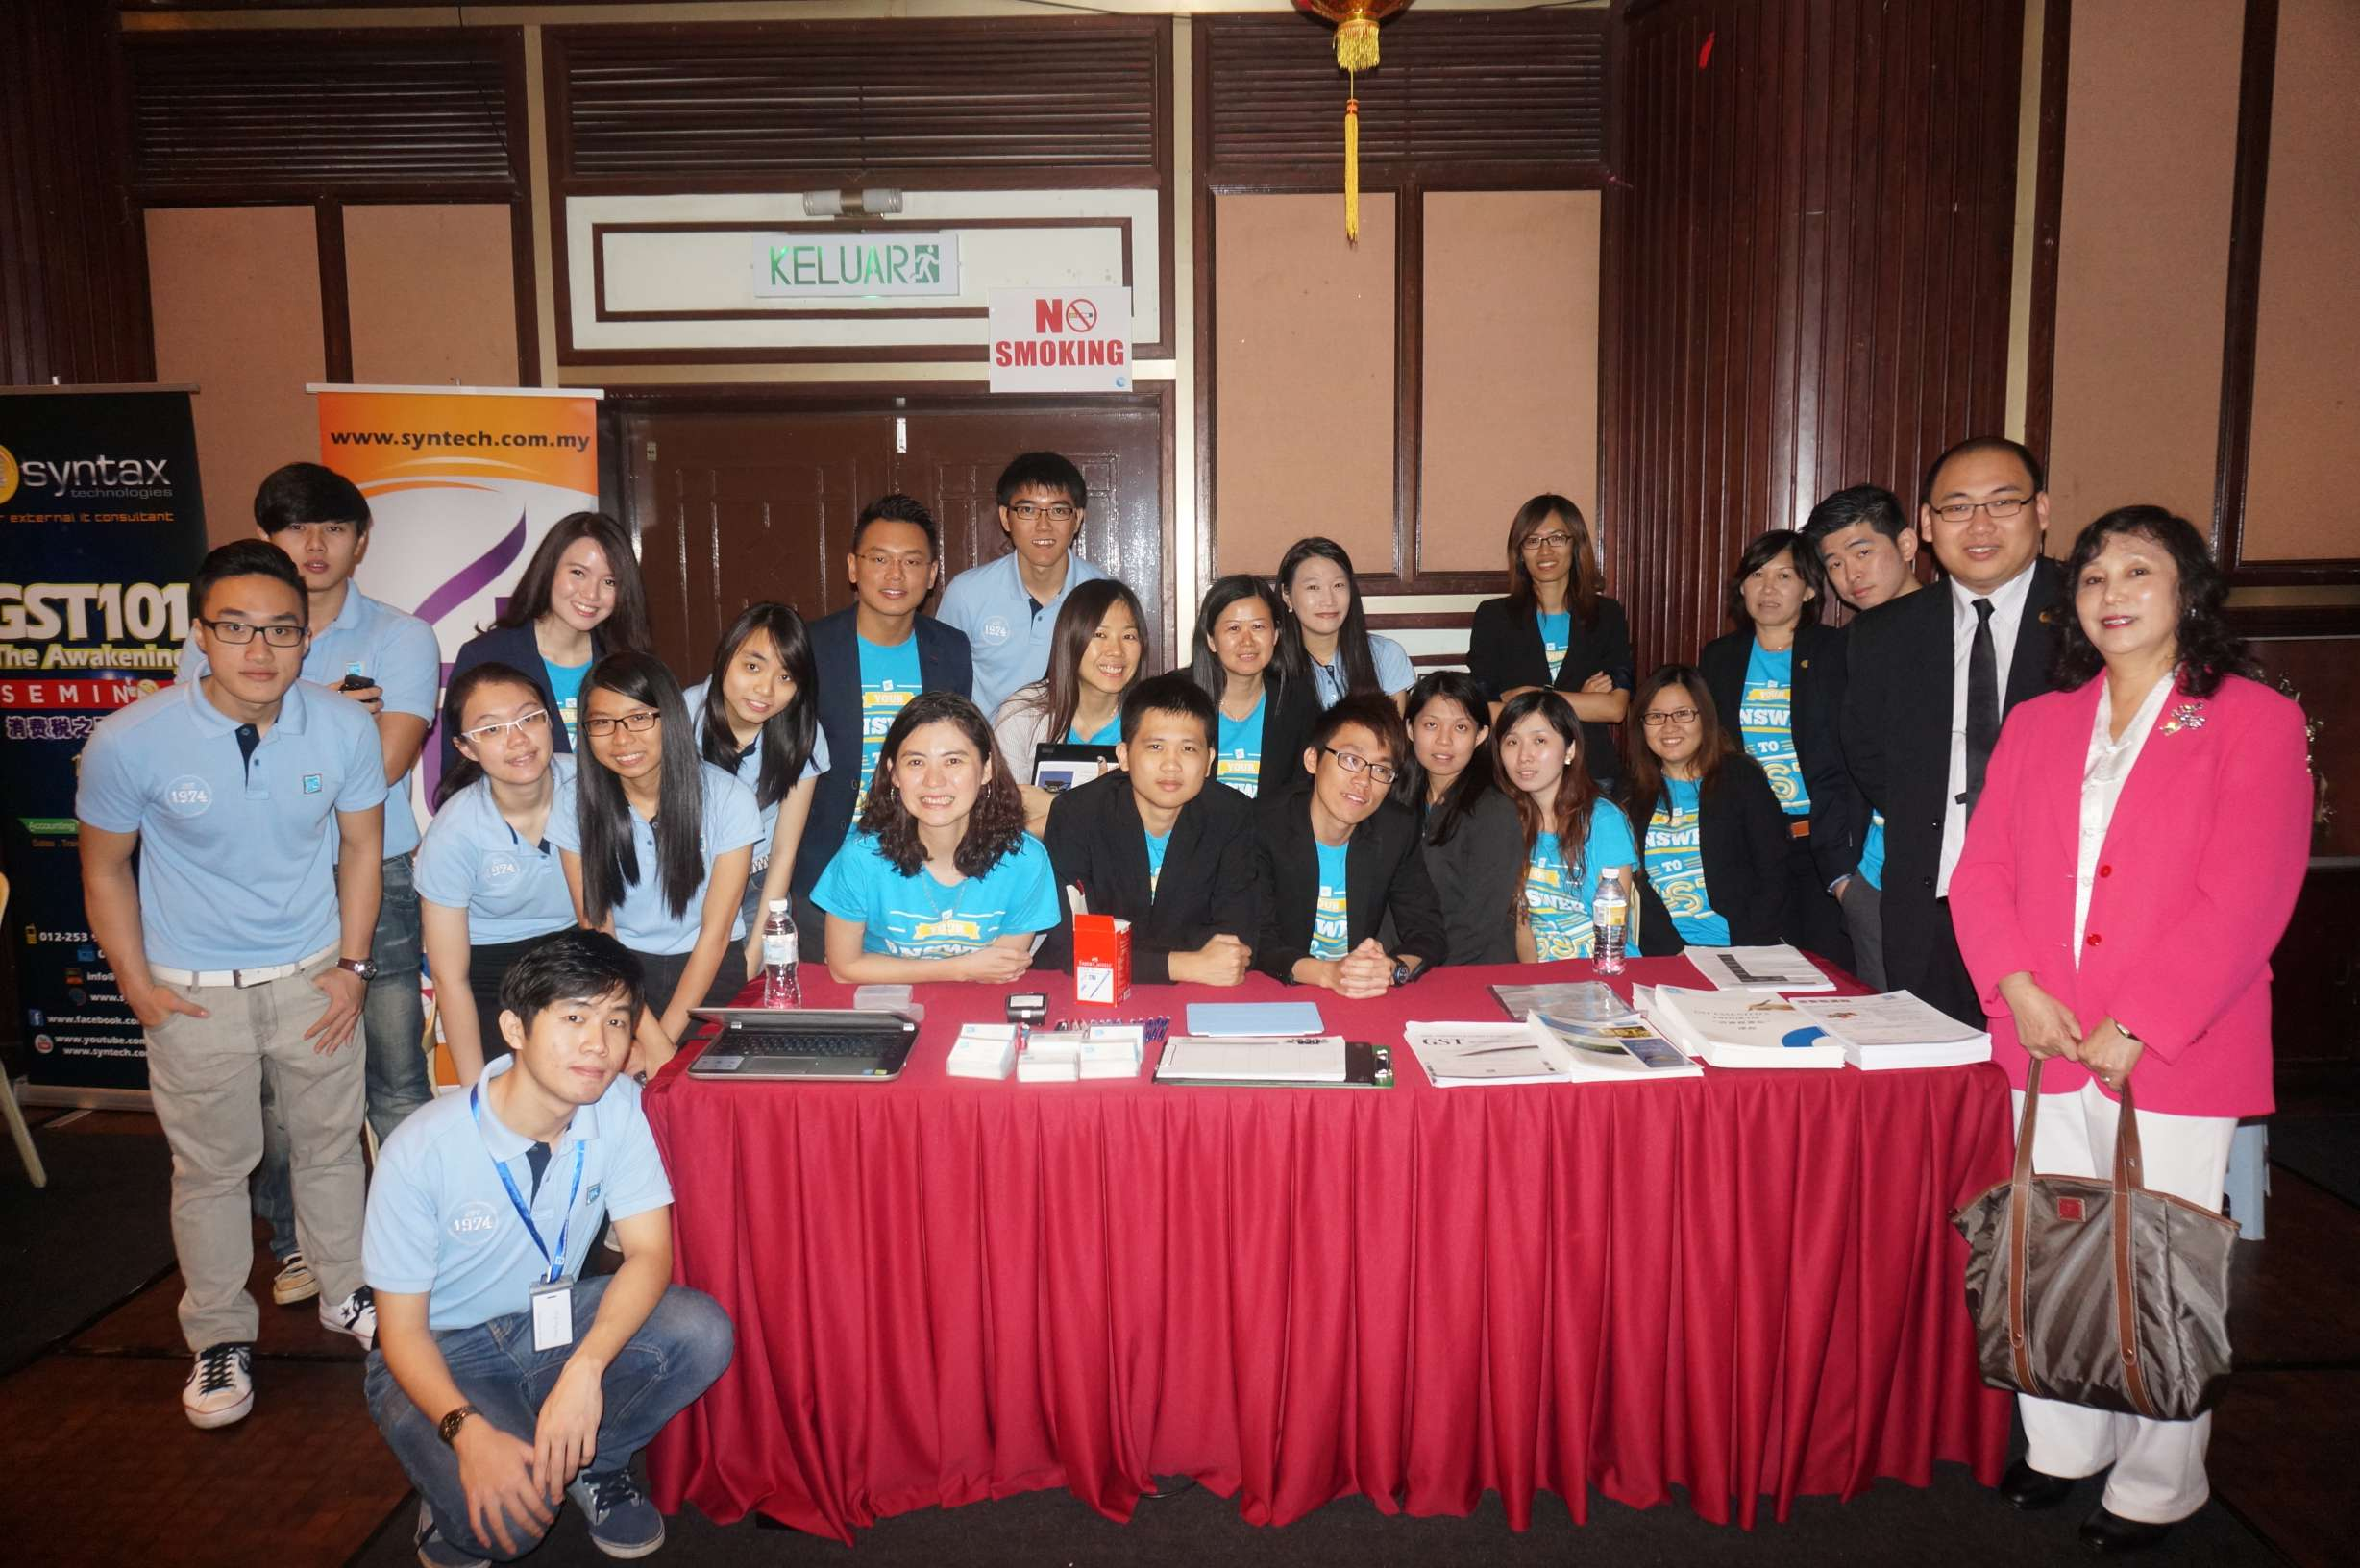 Thean Hou Gong Chine Press GST Event - 24 September 2014